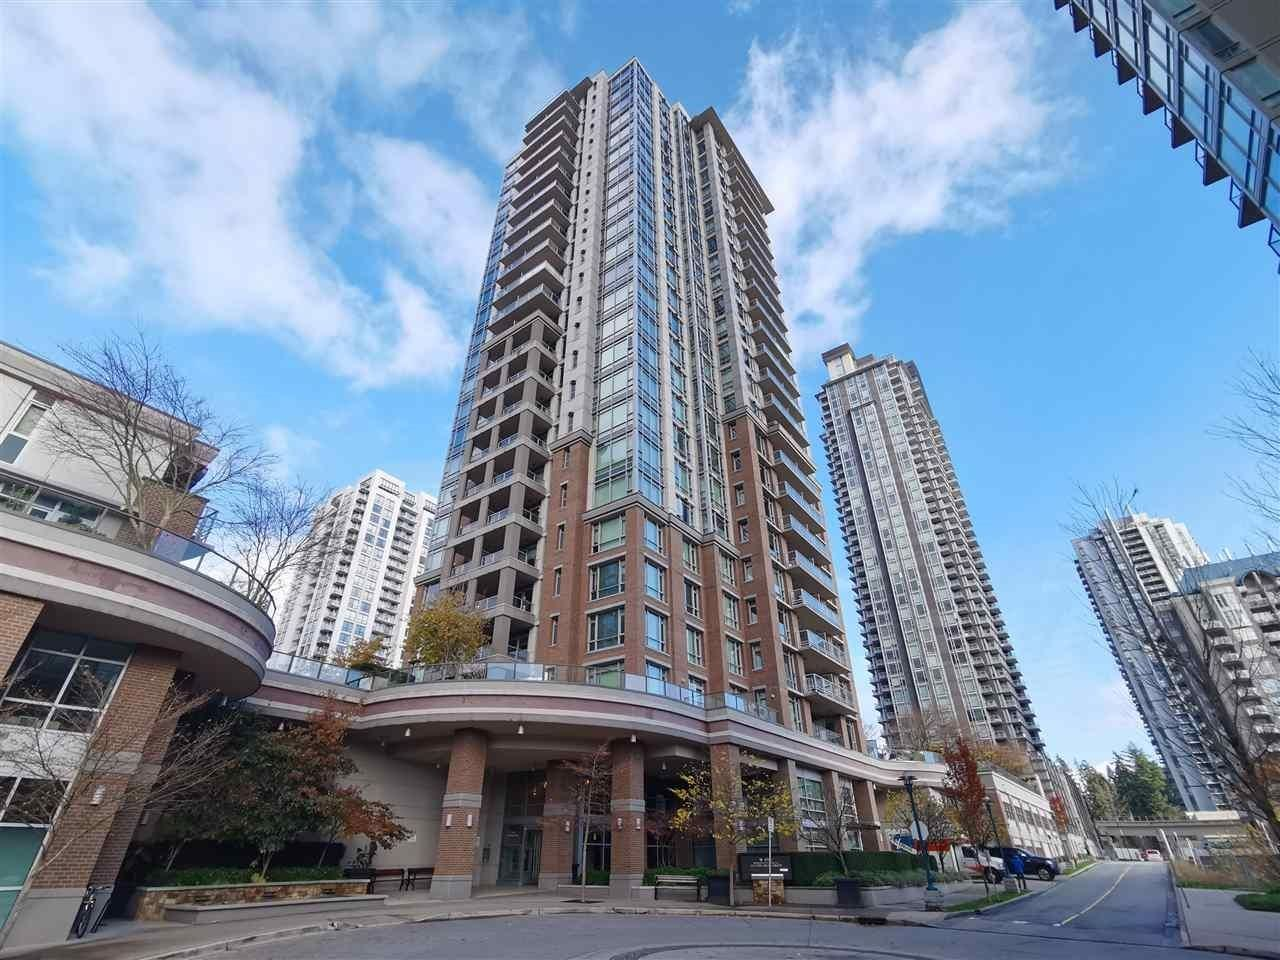 """Main Photo: 1508 1155 THE HIGH Street in Coquitlam: North Coquitlam Condo for sale in """"M-ONE"""" : MLS®# R2622195"""